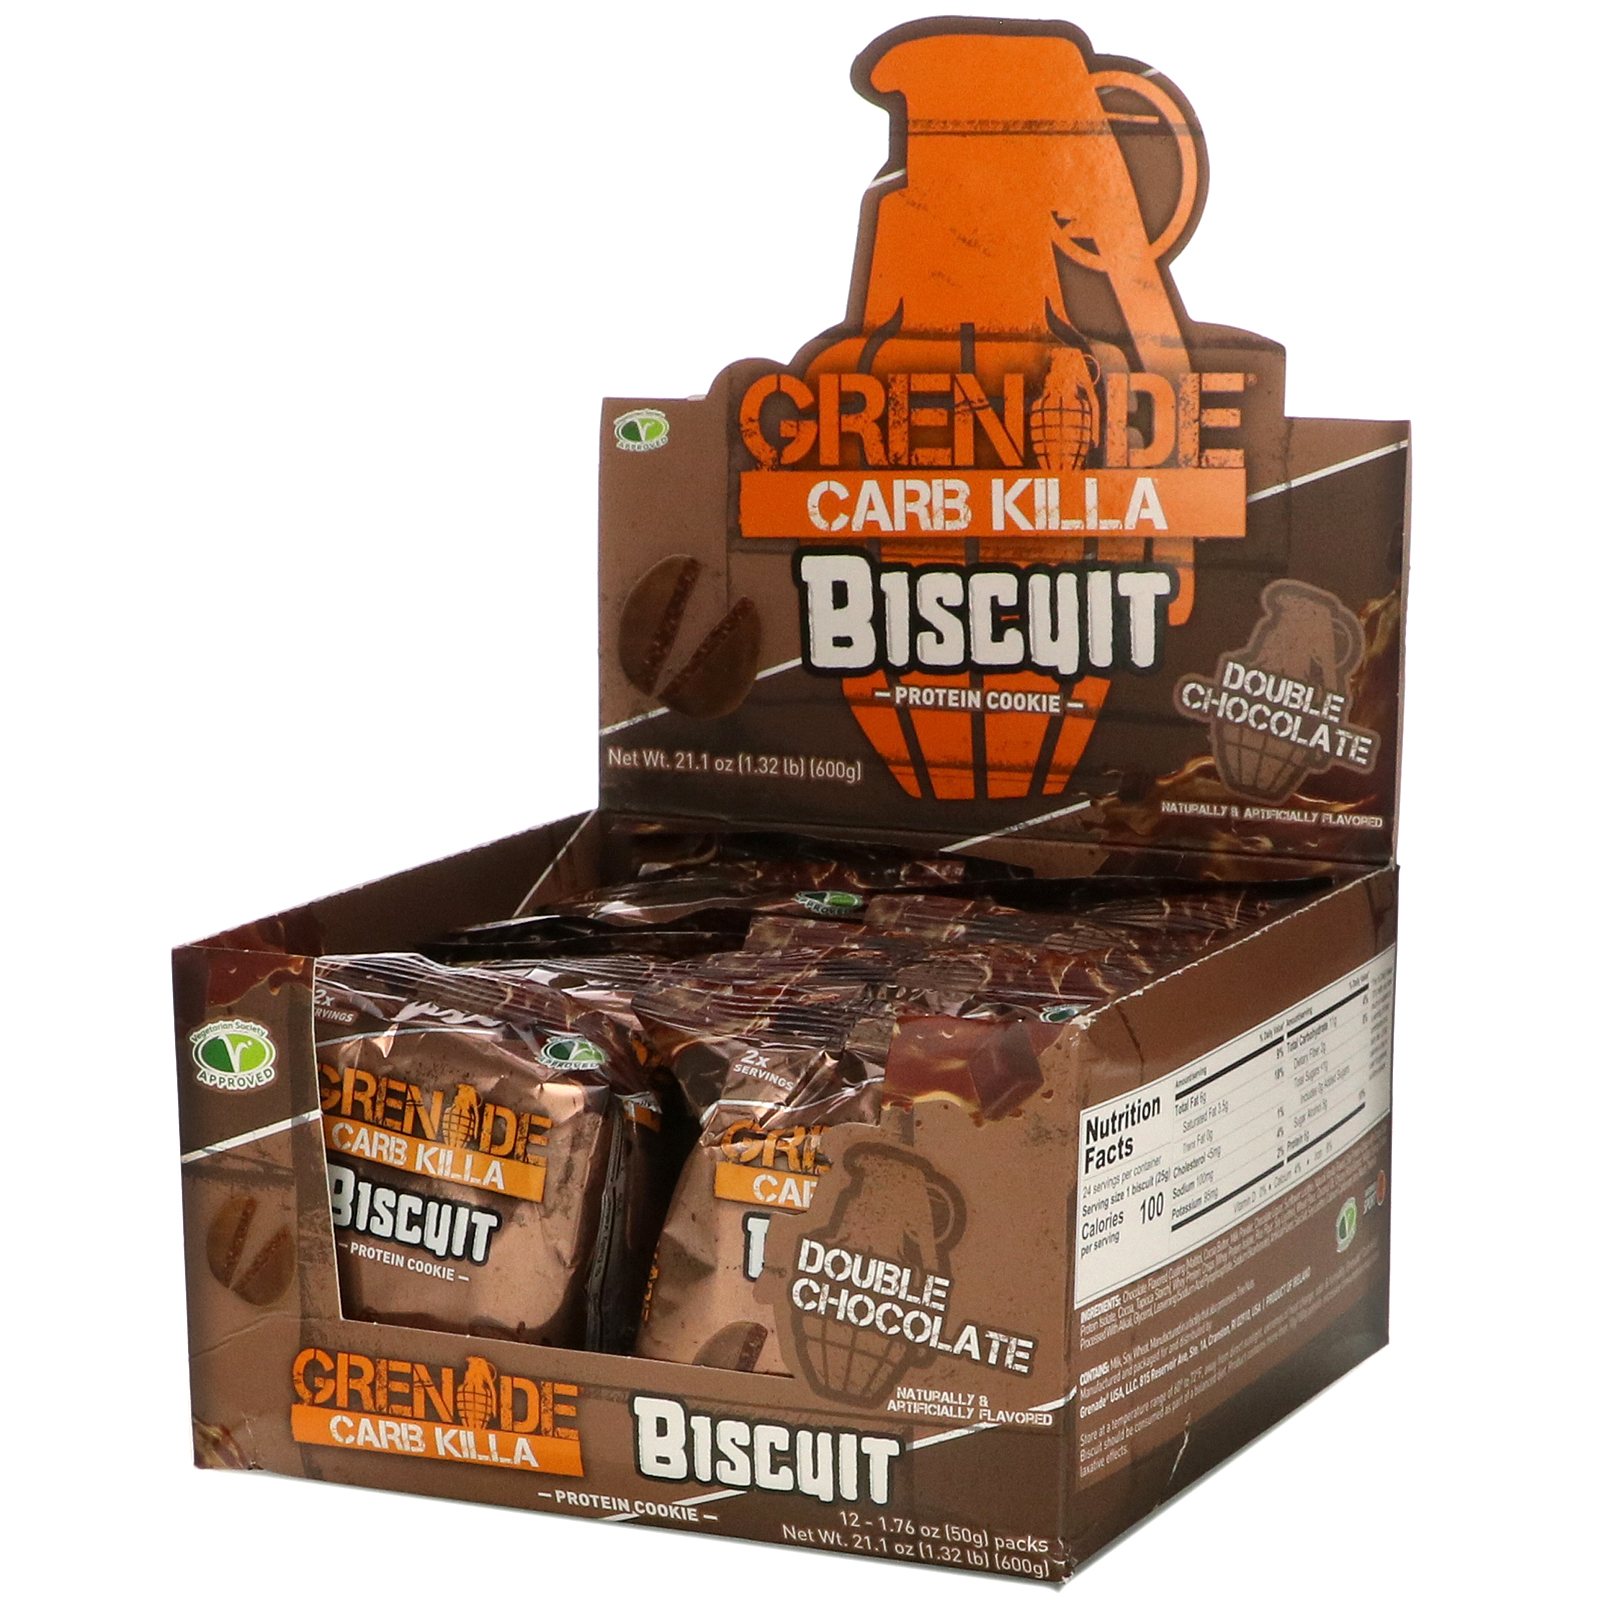 Grenade, Carb Killa, Biscuit, Double Chocolate, 12 Bars, 1.76 oz (50 g) Each